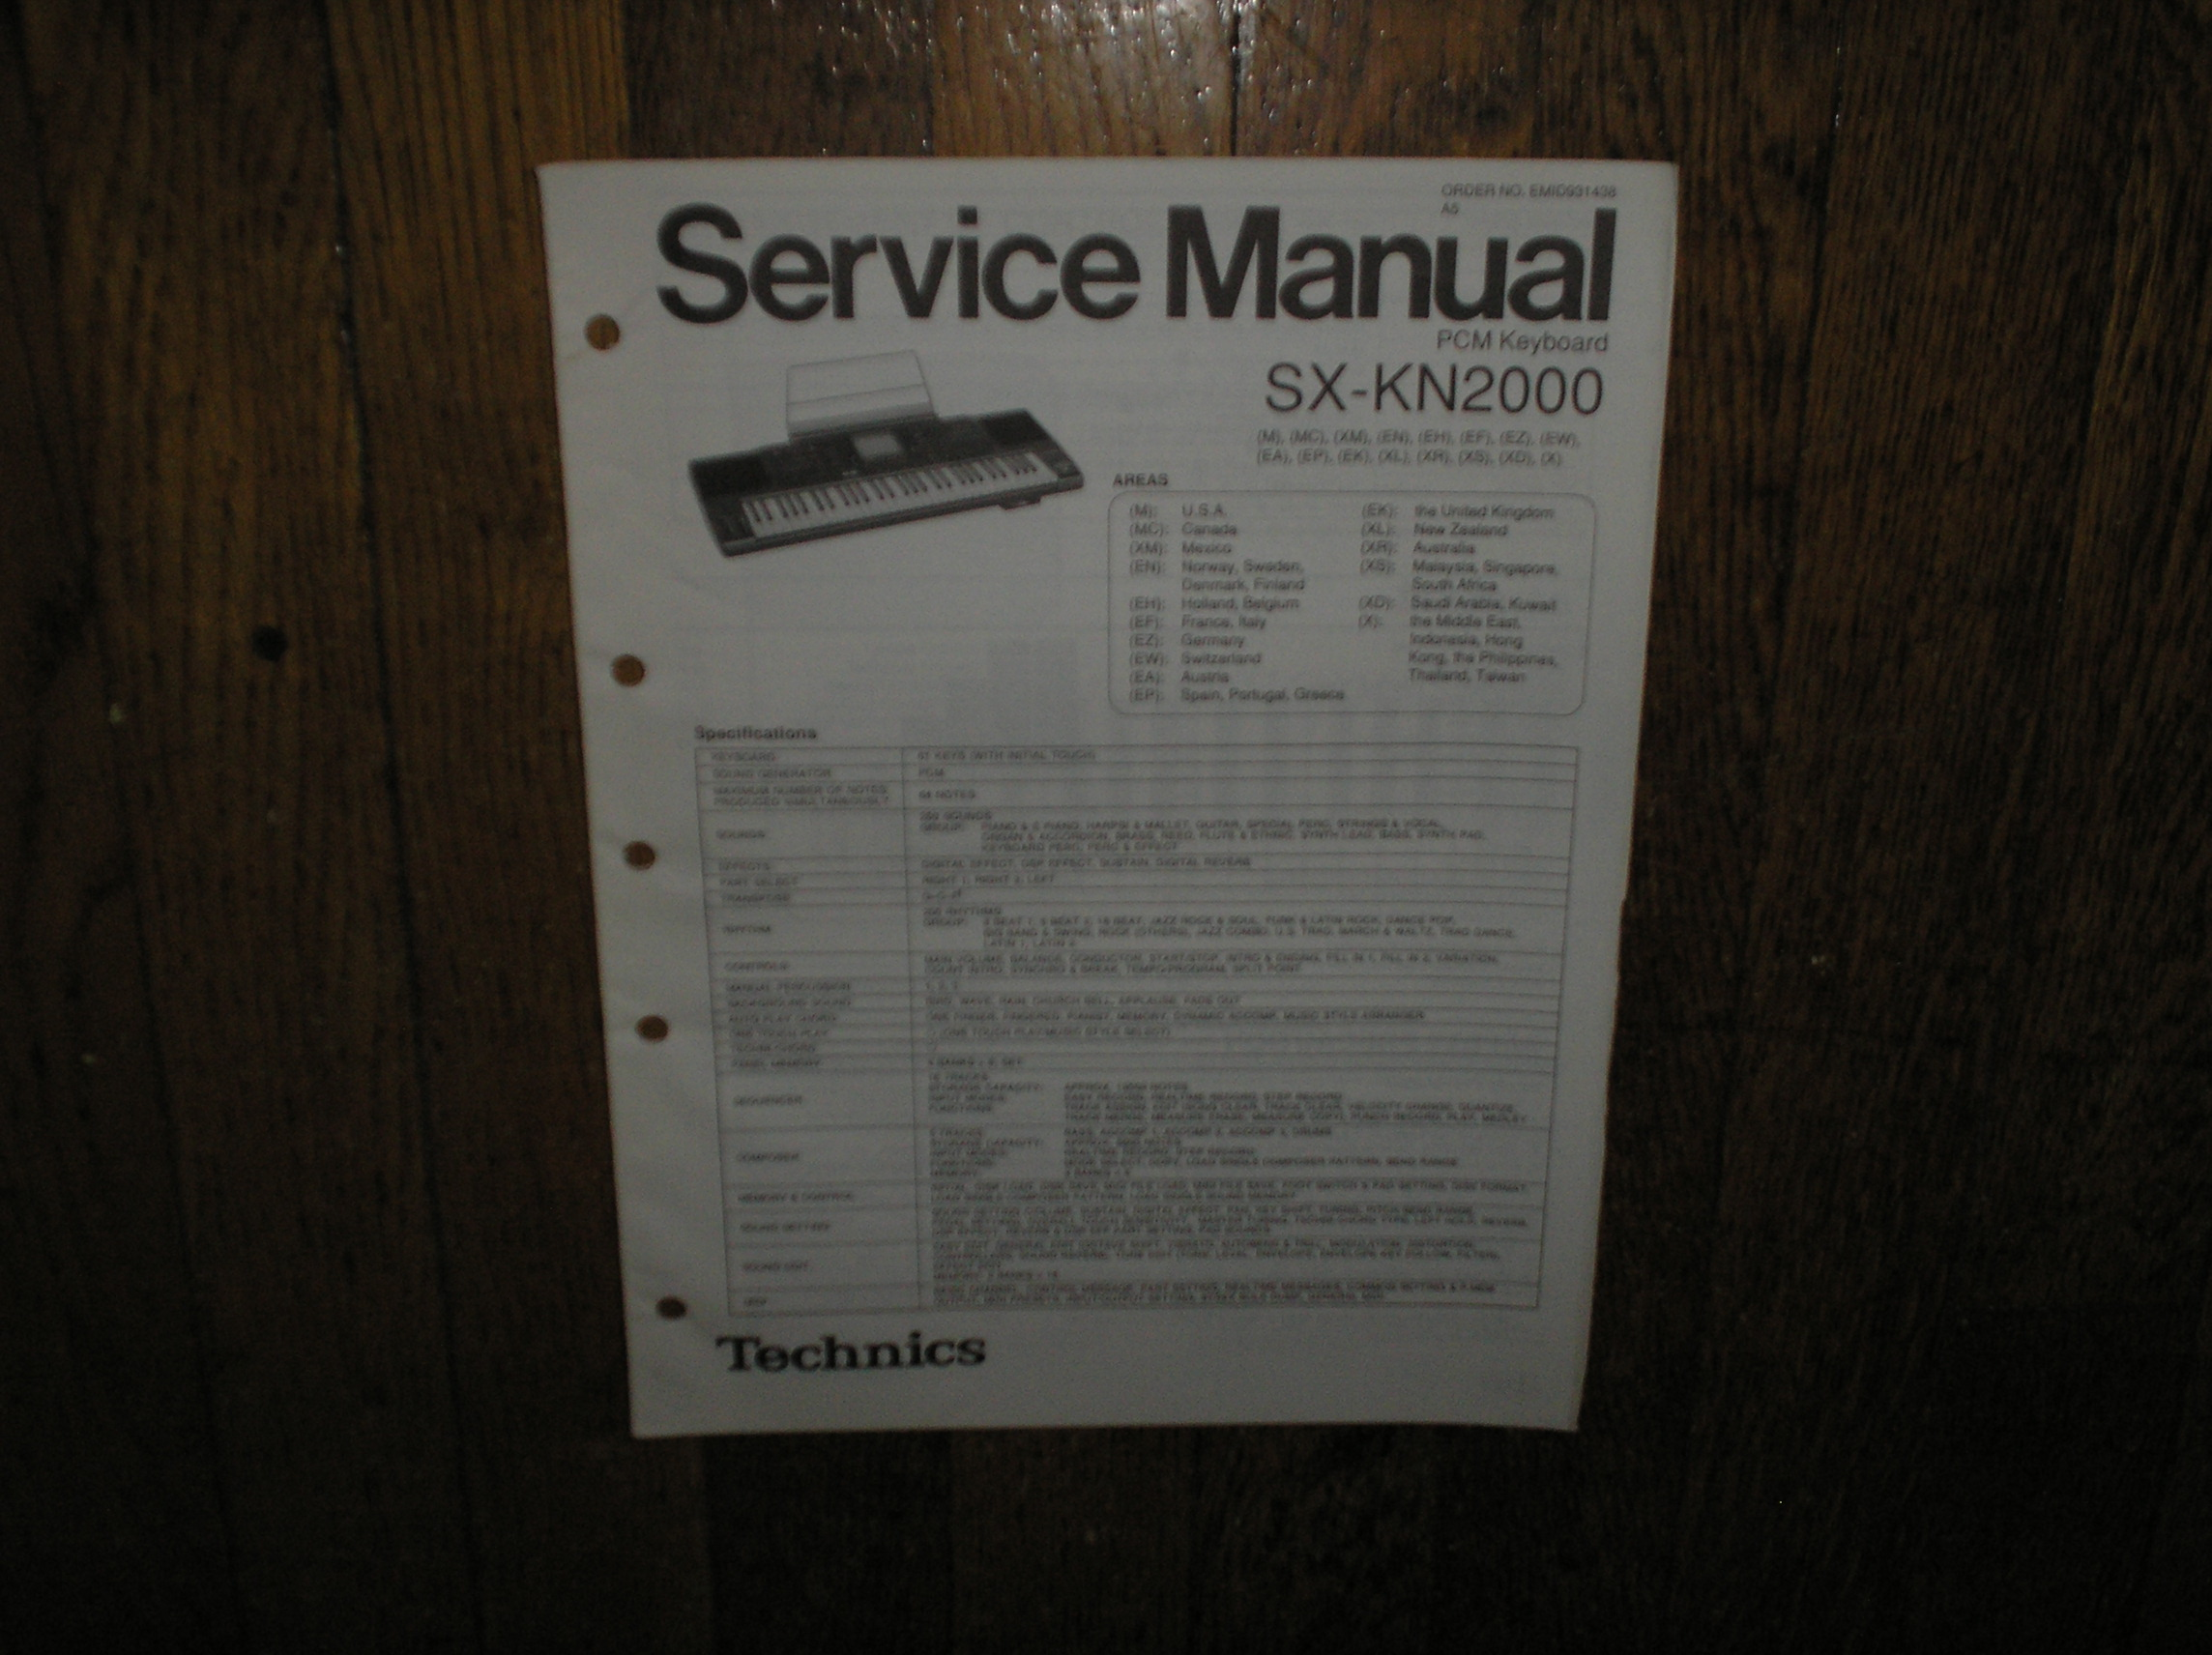 SX-KN2000 PCM Keyboard Service Manual